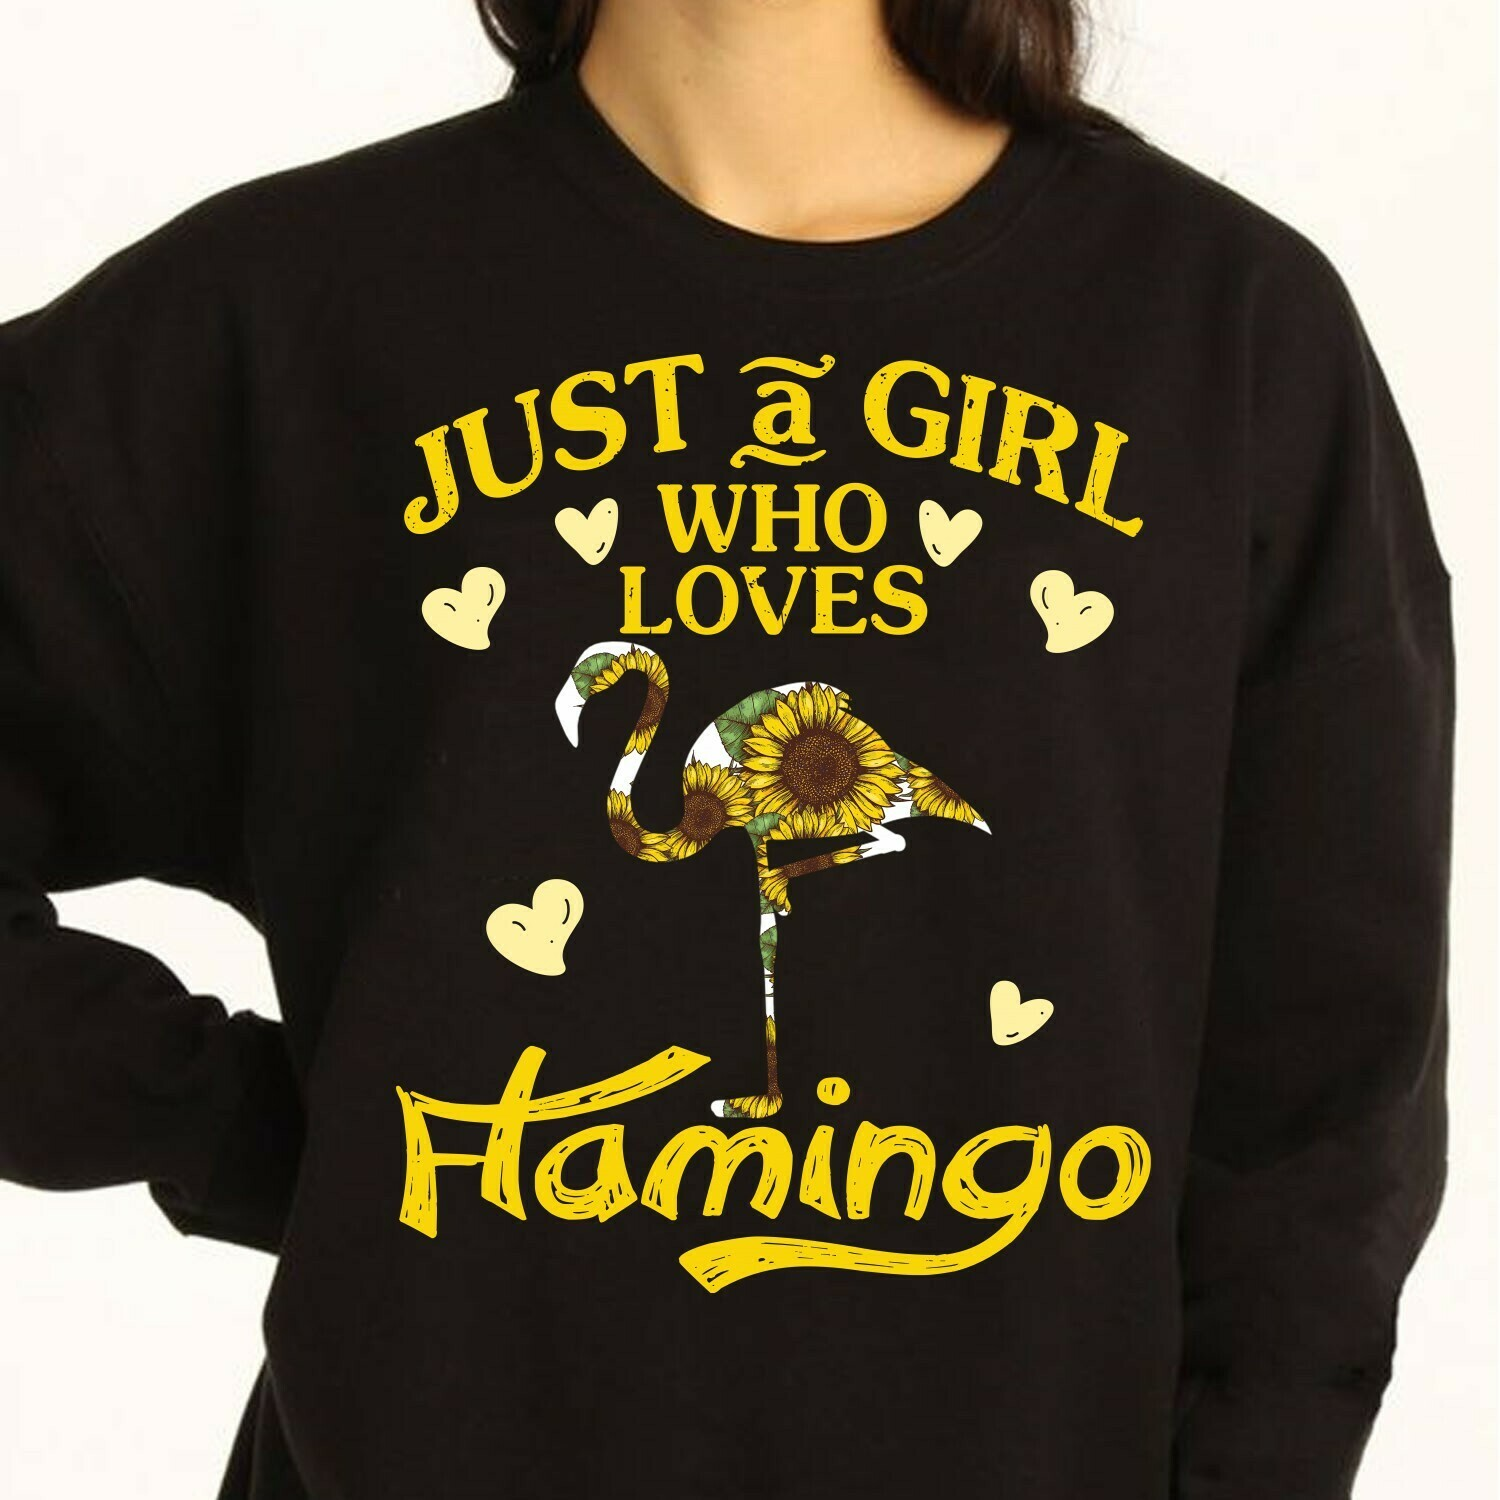 Just A Girl Who Loves Flamingo gift for lovers Sunflower Flamingo life,Girls Flamingo Shirt,Cute Flamingo Gift Idea Long Sleeve Sweatshirt Hoodie Jolly Family Gifts